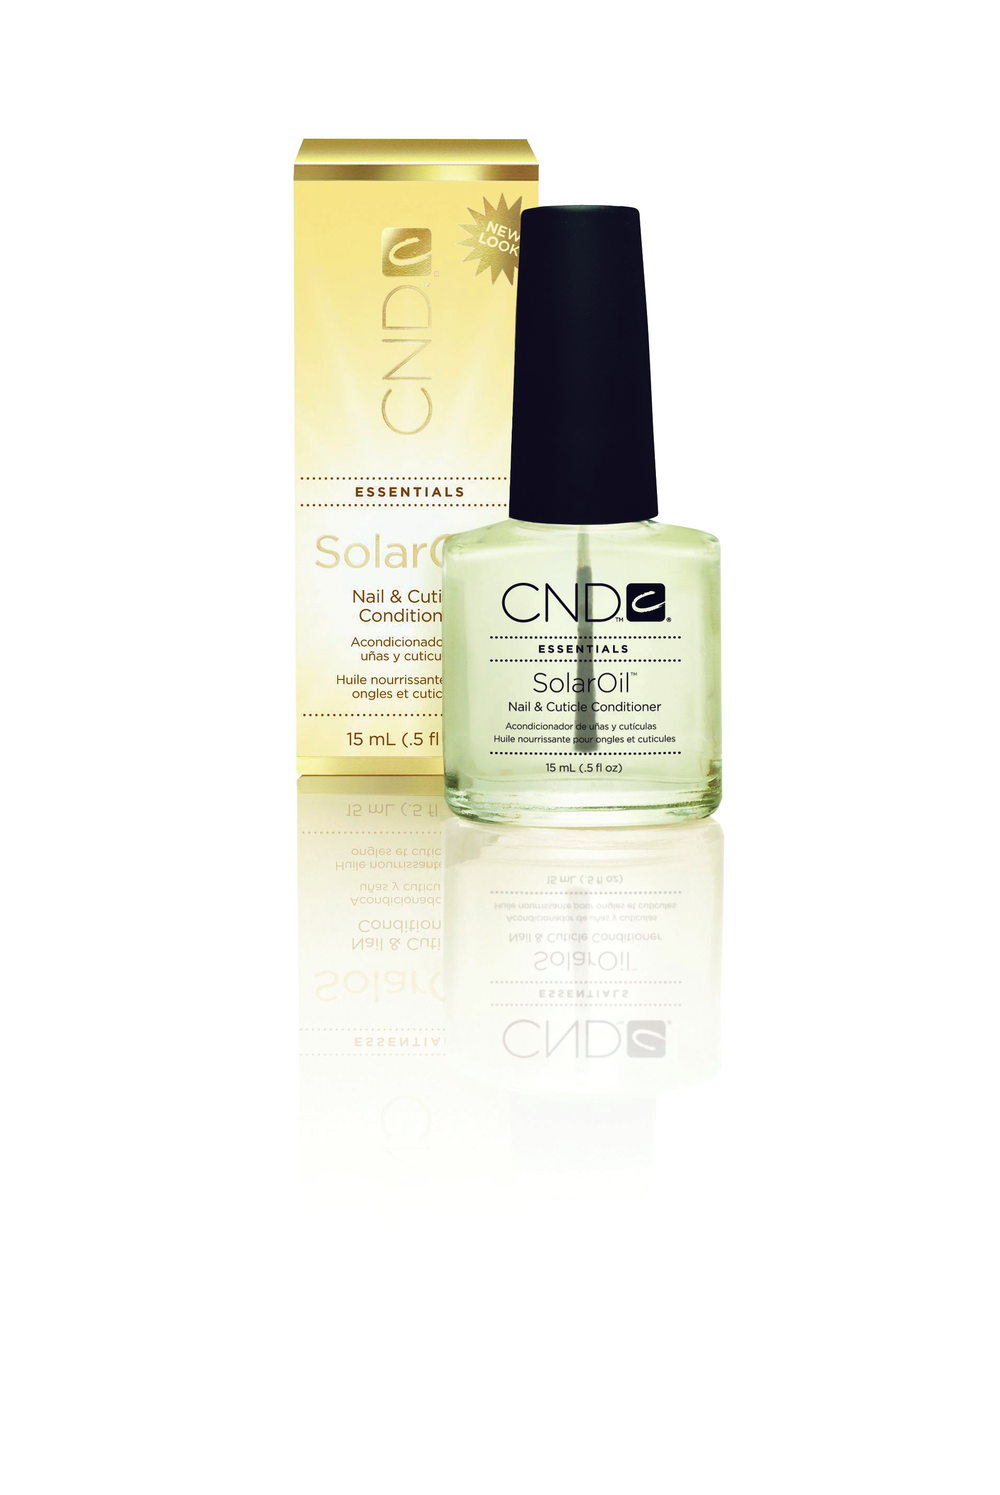 <p>FAVORITE CUTICLE TREATMENT</p> <p>1. <strong>CND:</strong> SolarOil</p> <p>2. <strong>Young Nails:</strong> Rose Cuticle Oil</p> <p>3. <strong>OPI Products:</strong> Avoplex Cuticle Oil To Go</p> <p>4. <strong>NSI:</strong> Nurture Oil</p> <p>5. <strong>Hand &amp; Nail Harmony:</strong> Nourish by Harmony</p>